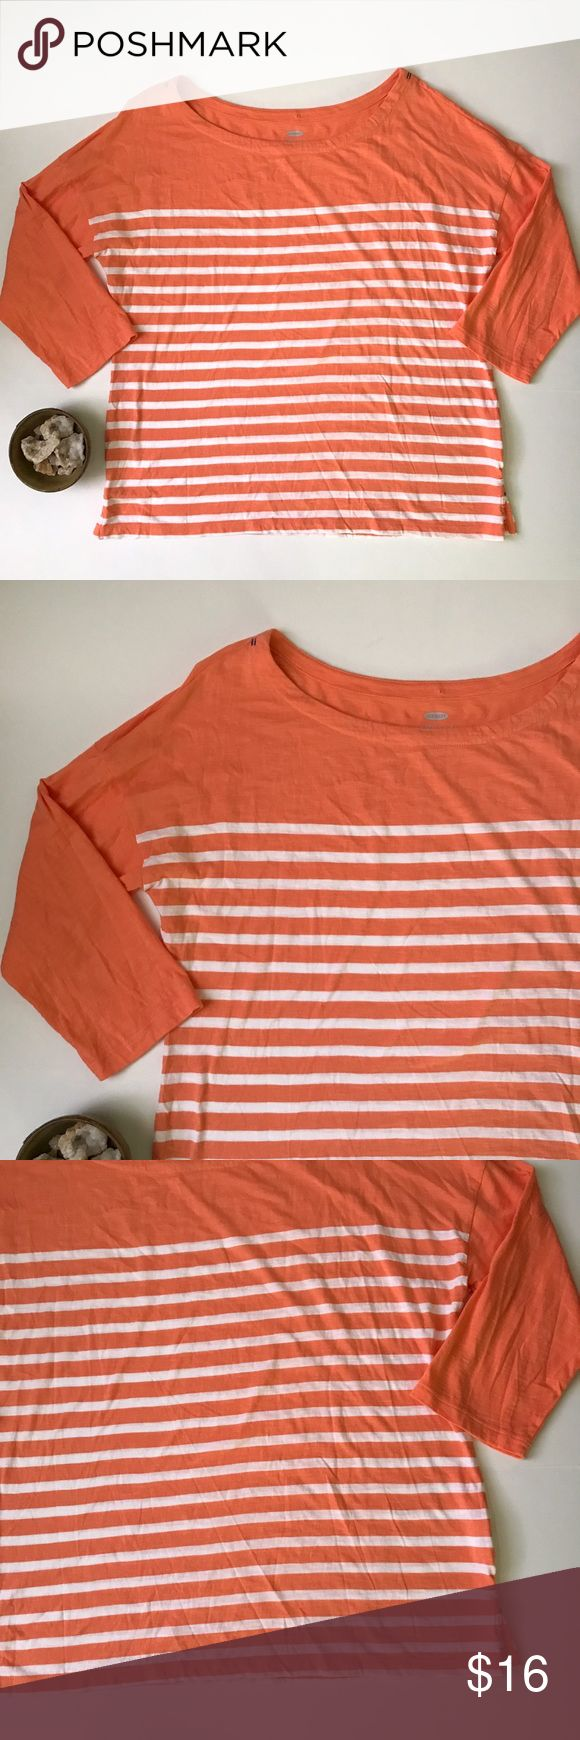 Old Navy Orange + white nautical striped shirt XL Old Navy women's peach/orange and white striped 3/4 sleeve tee in a nautical style. The stripes are ultra-classic and this top can easily be paired with jeans or a skirt. The shirt is women's size extra large.  This shirt is in gently pre-owned condition with light wear. There is a small pull at the neckline but it doesn't affect wear. Please take a look through the photos to see if this item is right for you! Old Navy Tops Tees - Long Sleeve